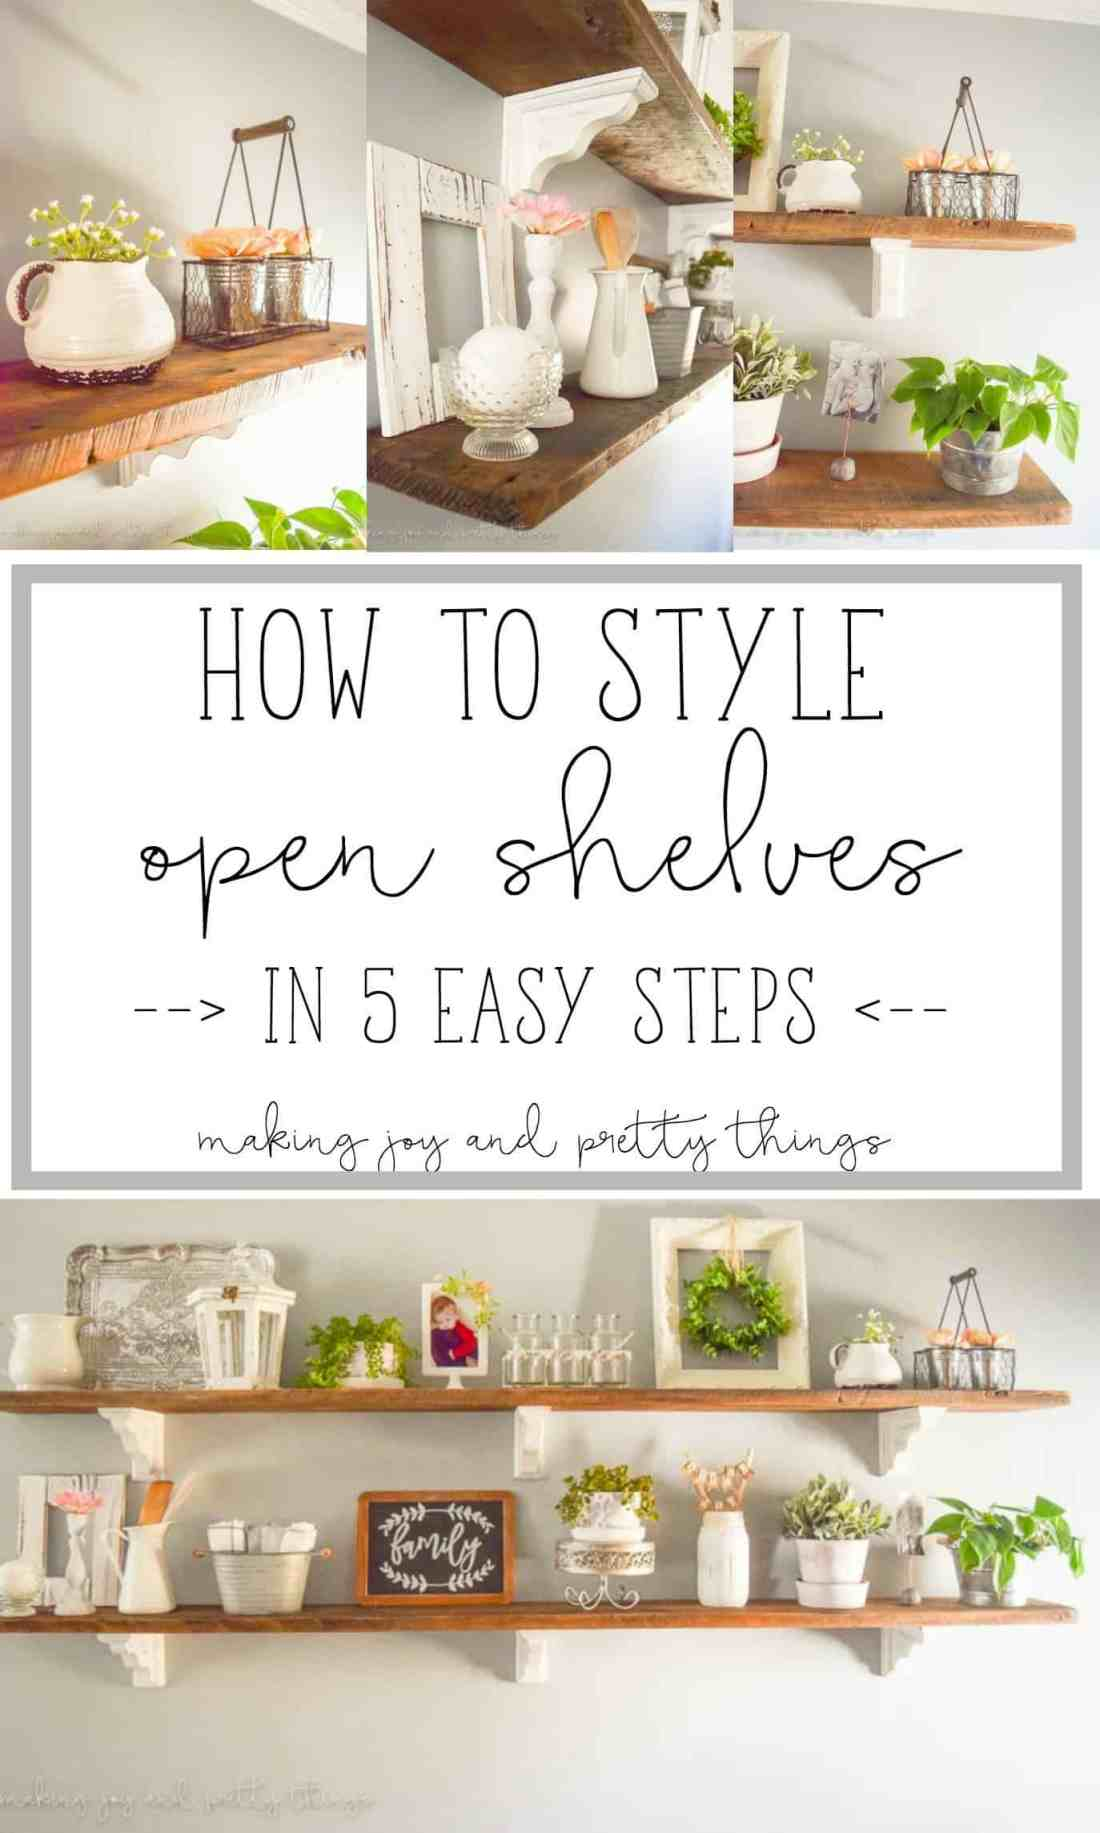 How to style open shelves in 5 easy steps! Perfect tips and inspiration to style your own shelves in whatever style you want.